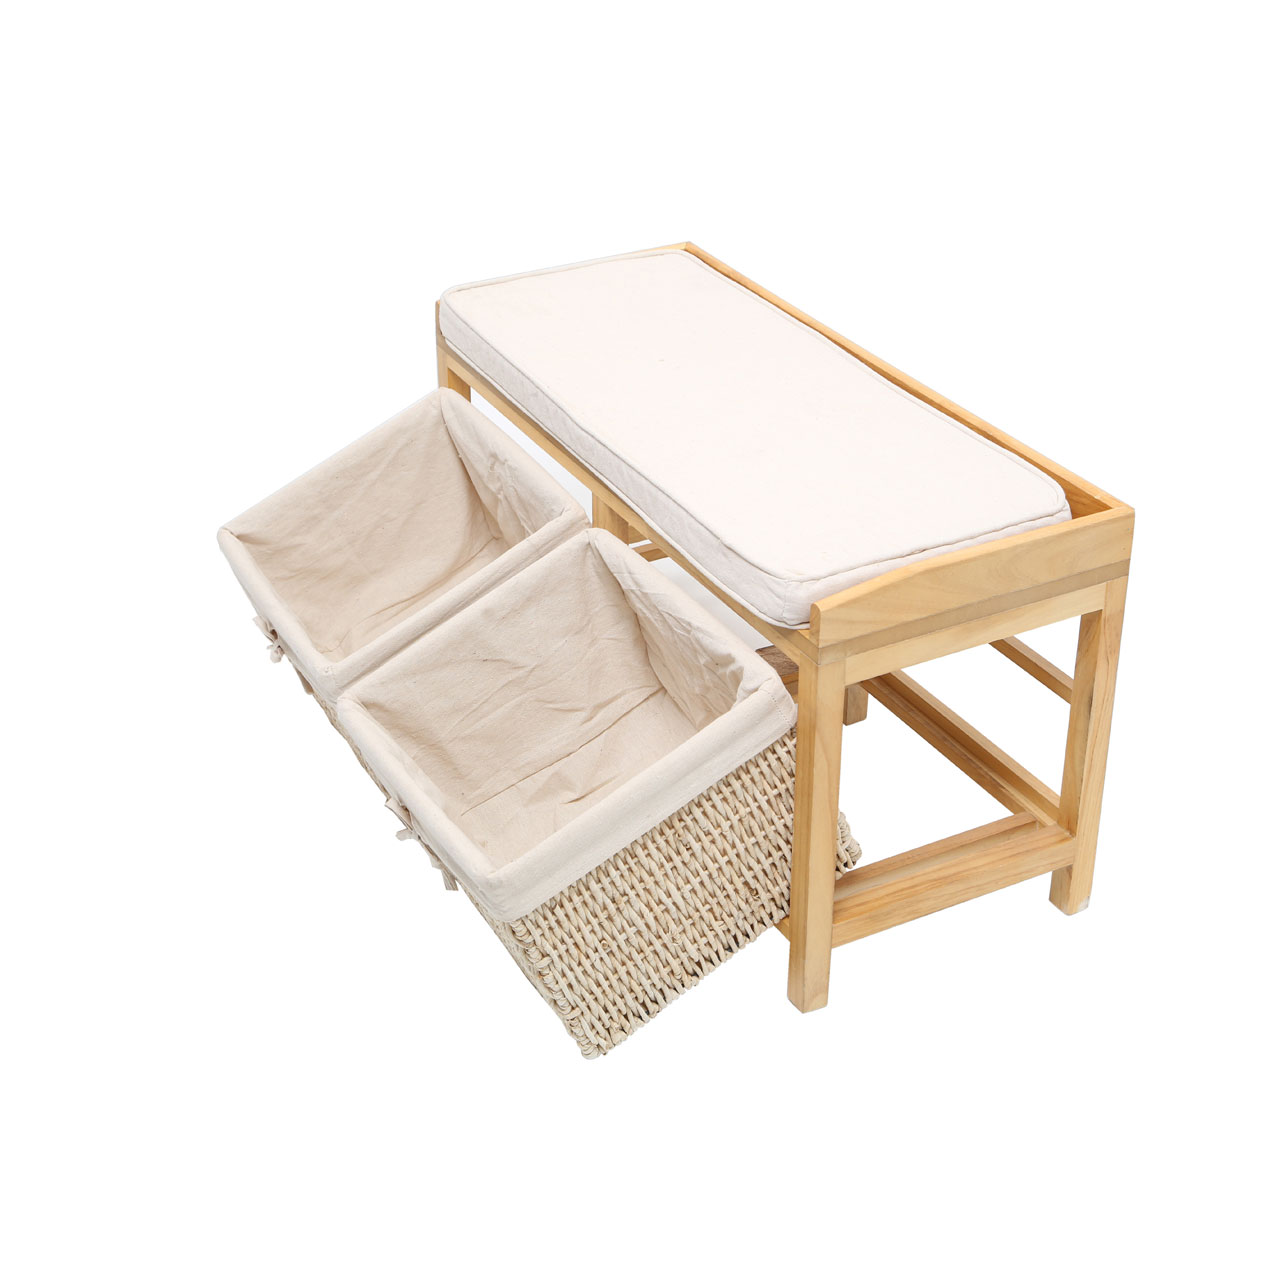 Rustic padded light wood wooden storage bench with 2 cotton lined maize baskets ebay Bench with baskets